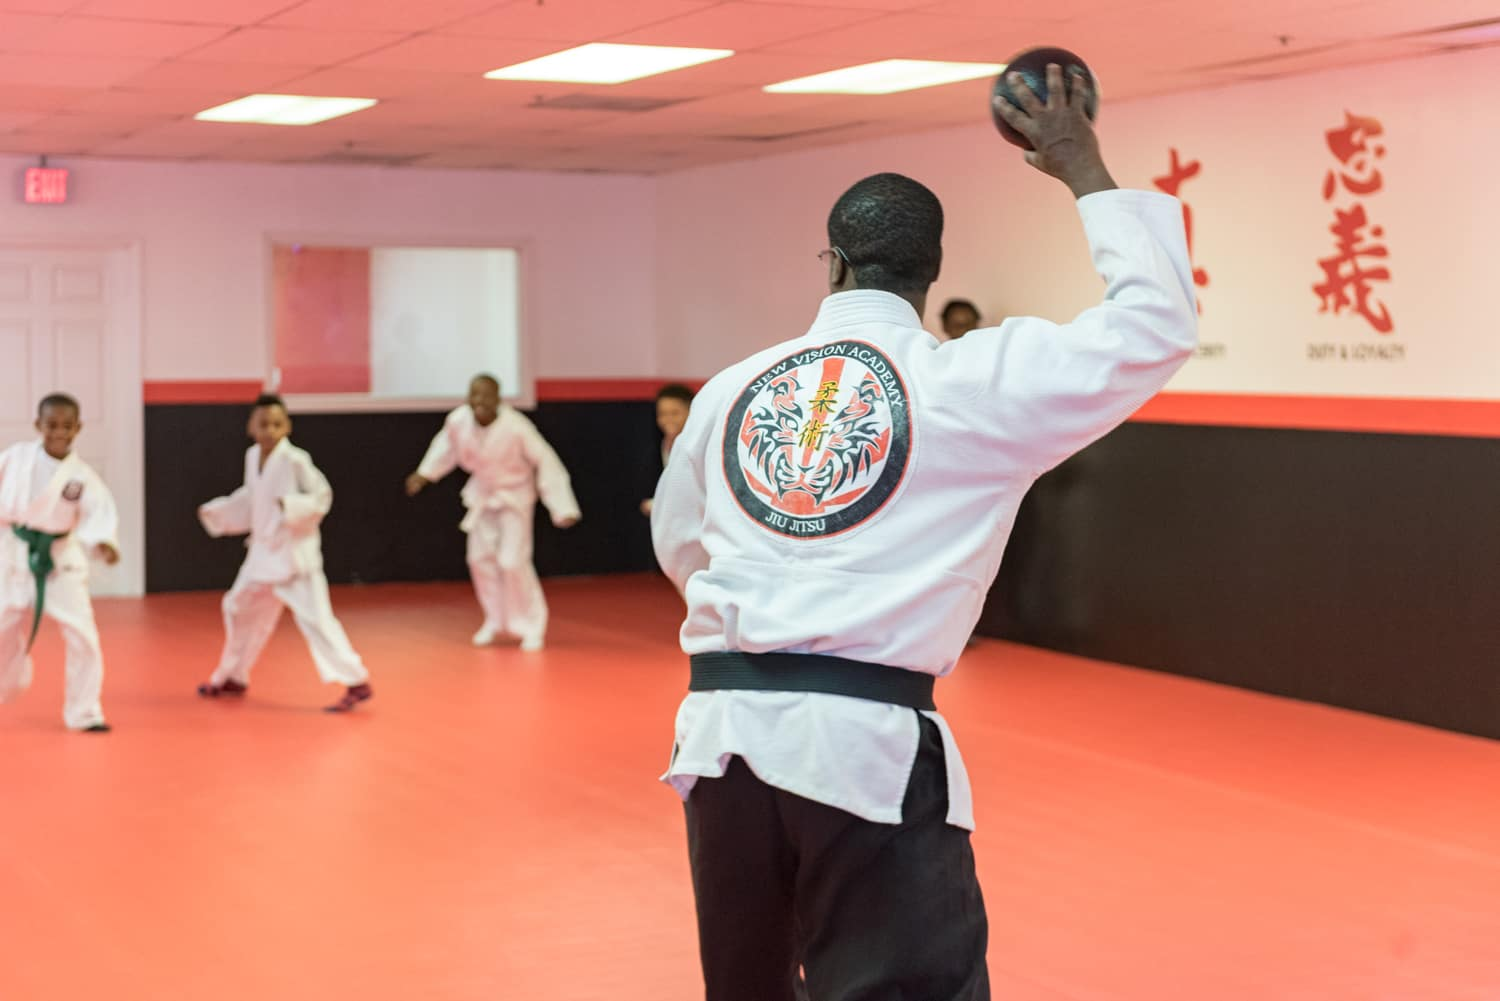 NORWOOD KIDS MARTIAL ARTS